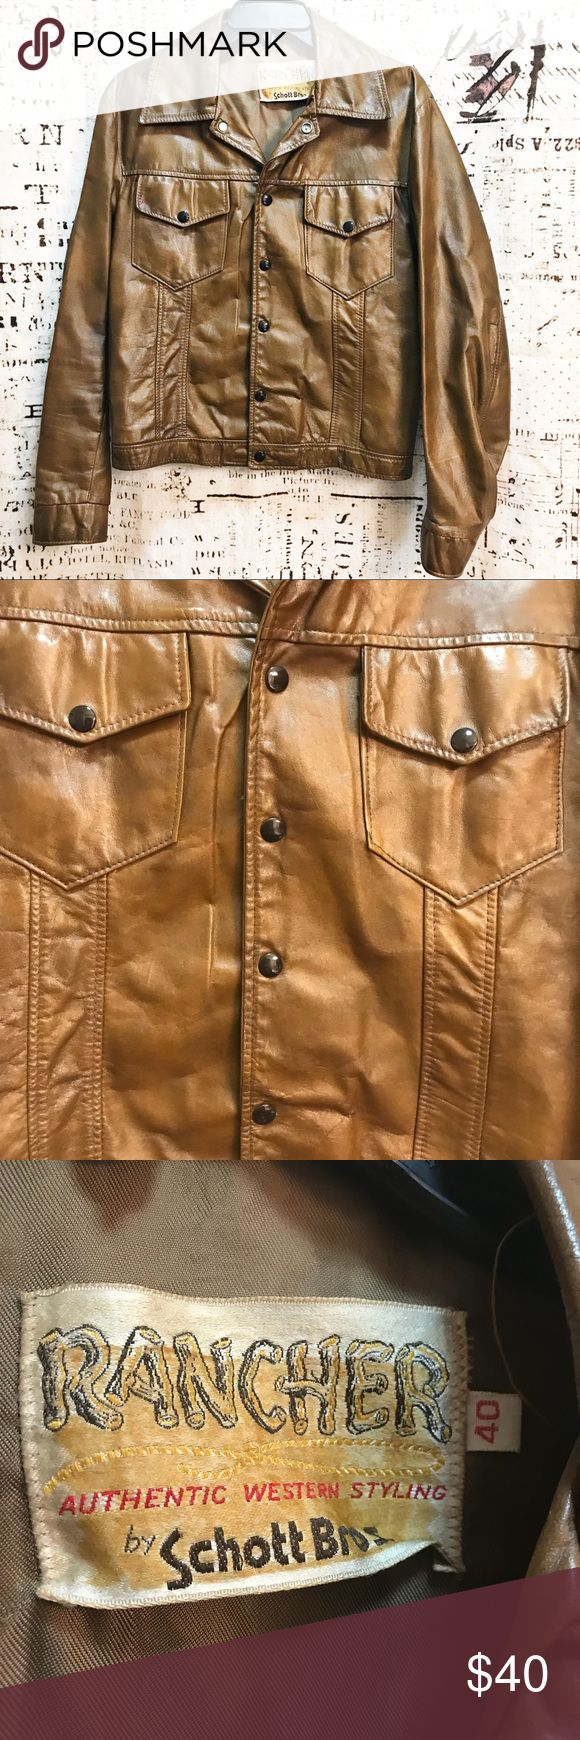 """Vintage Western Snap Front Leather Jacket Coat Crazy cool snap front jacket by Schott Bros. Rancher style western leather coat, super classic! In excellent exterior condition with minor signs of fraying along liner seam. Approx. measurements: 20"""" flat armpit to armpit, 11.5"""" armpit to bottom hem, 22"""" shoulder to bottom hem. Men's size 40 translates to a large, but please rely on measurements for fit! Vintage Jackets & Coats"""